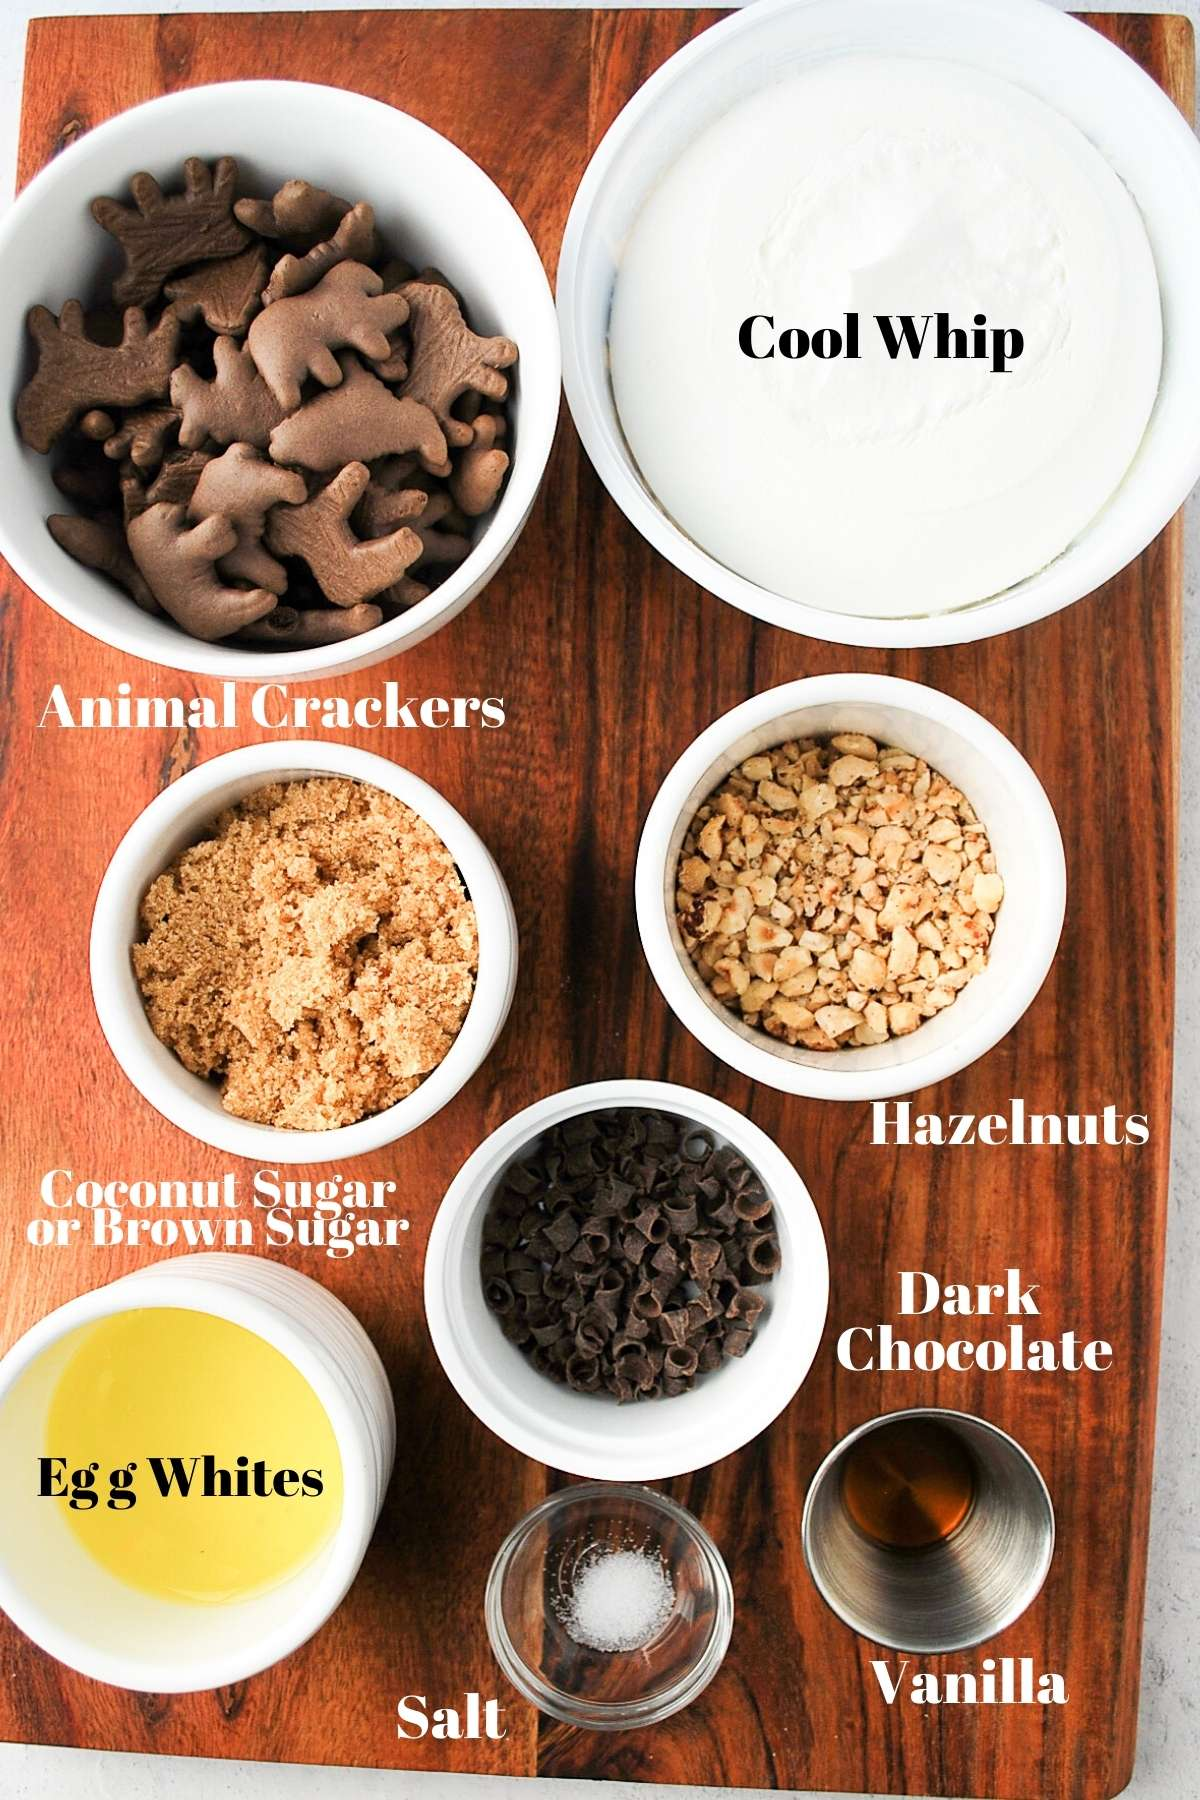 animal crackers, cool whip, sugar, nuts, shaved chocolate, vanilla, salt, and egg whites on a board for making pie